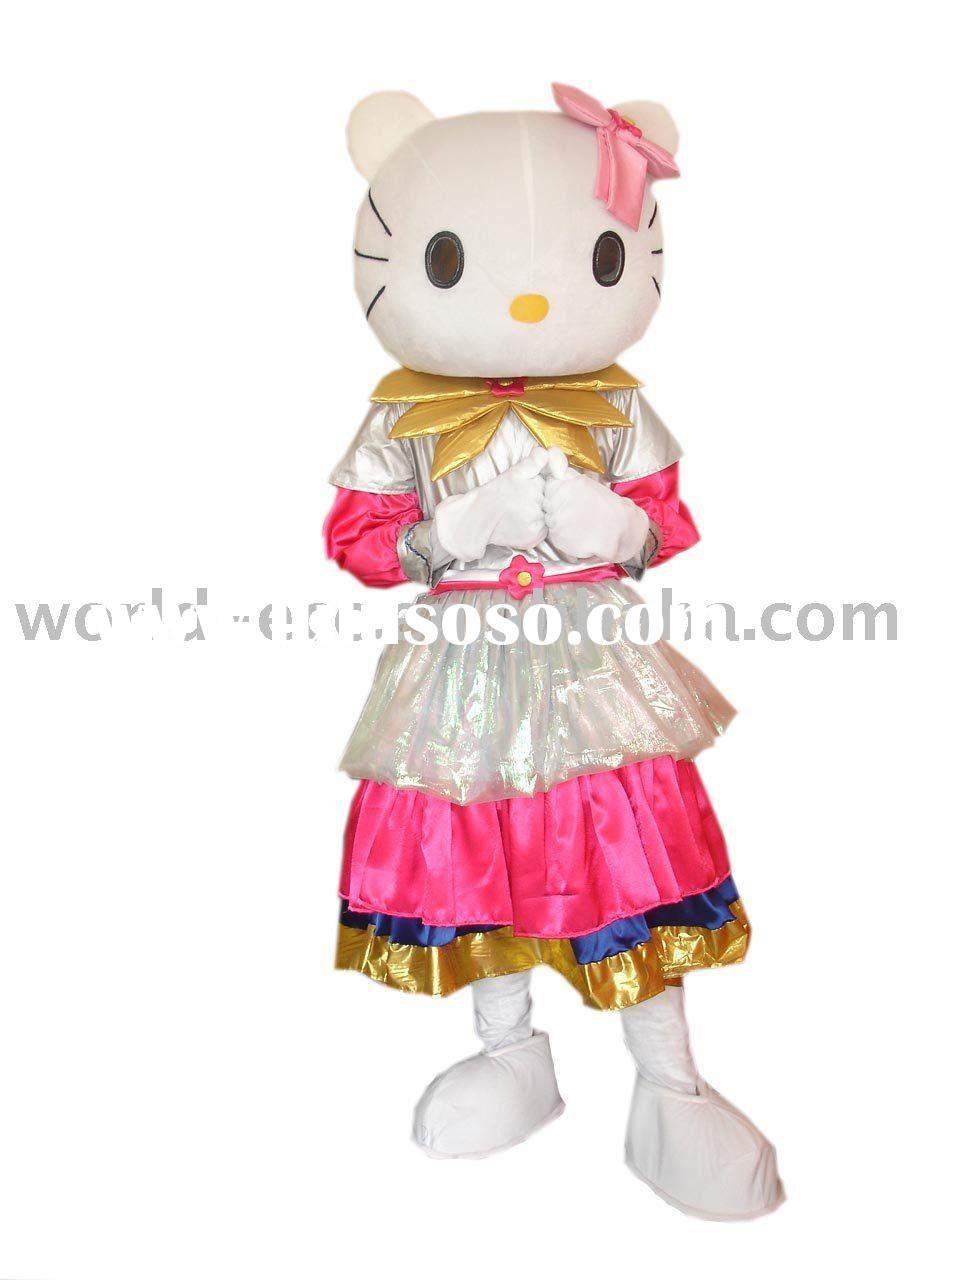 popular Hello Kitty Costume, Mascot Costume,cartoon mascot